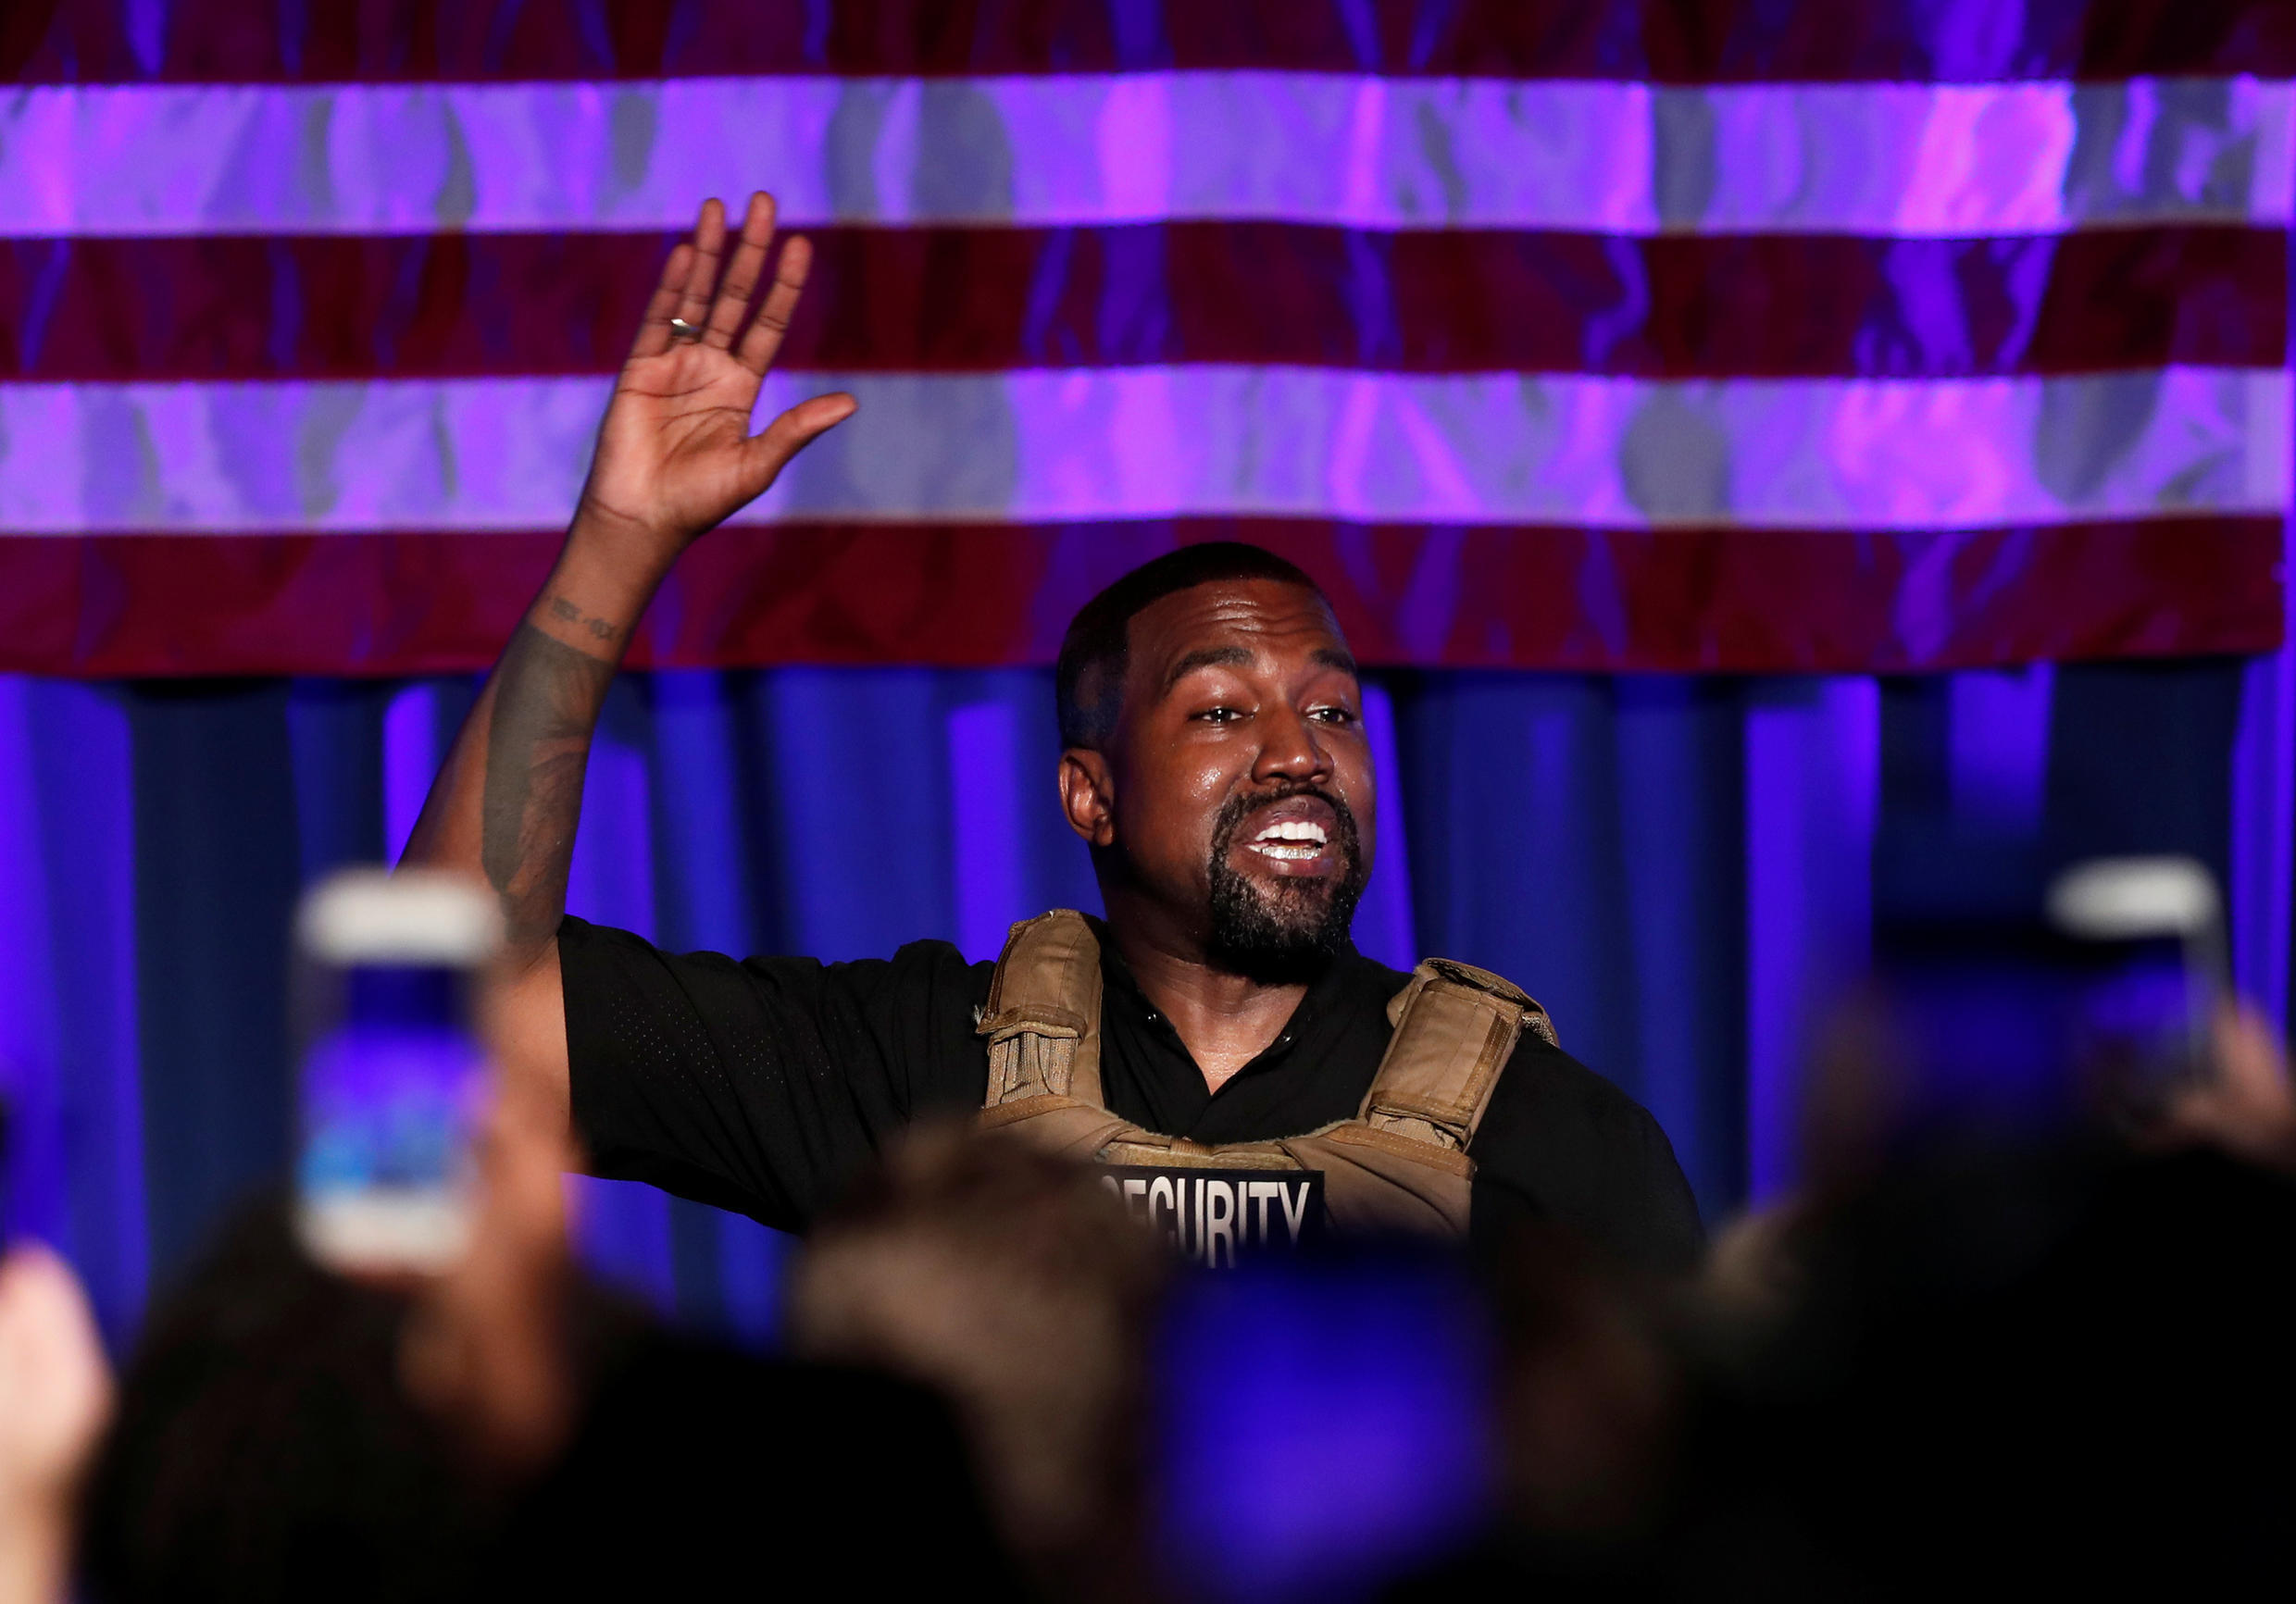 2020-07-20T001806Z_1142070206_RC2OWH946AQ3_RTRMADP_3_USA-ELECTION-KANYE-WEST